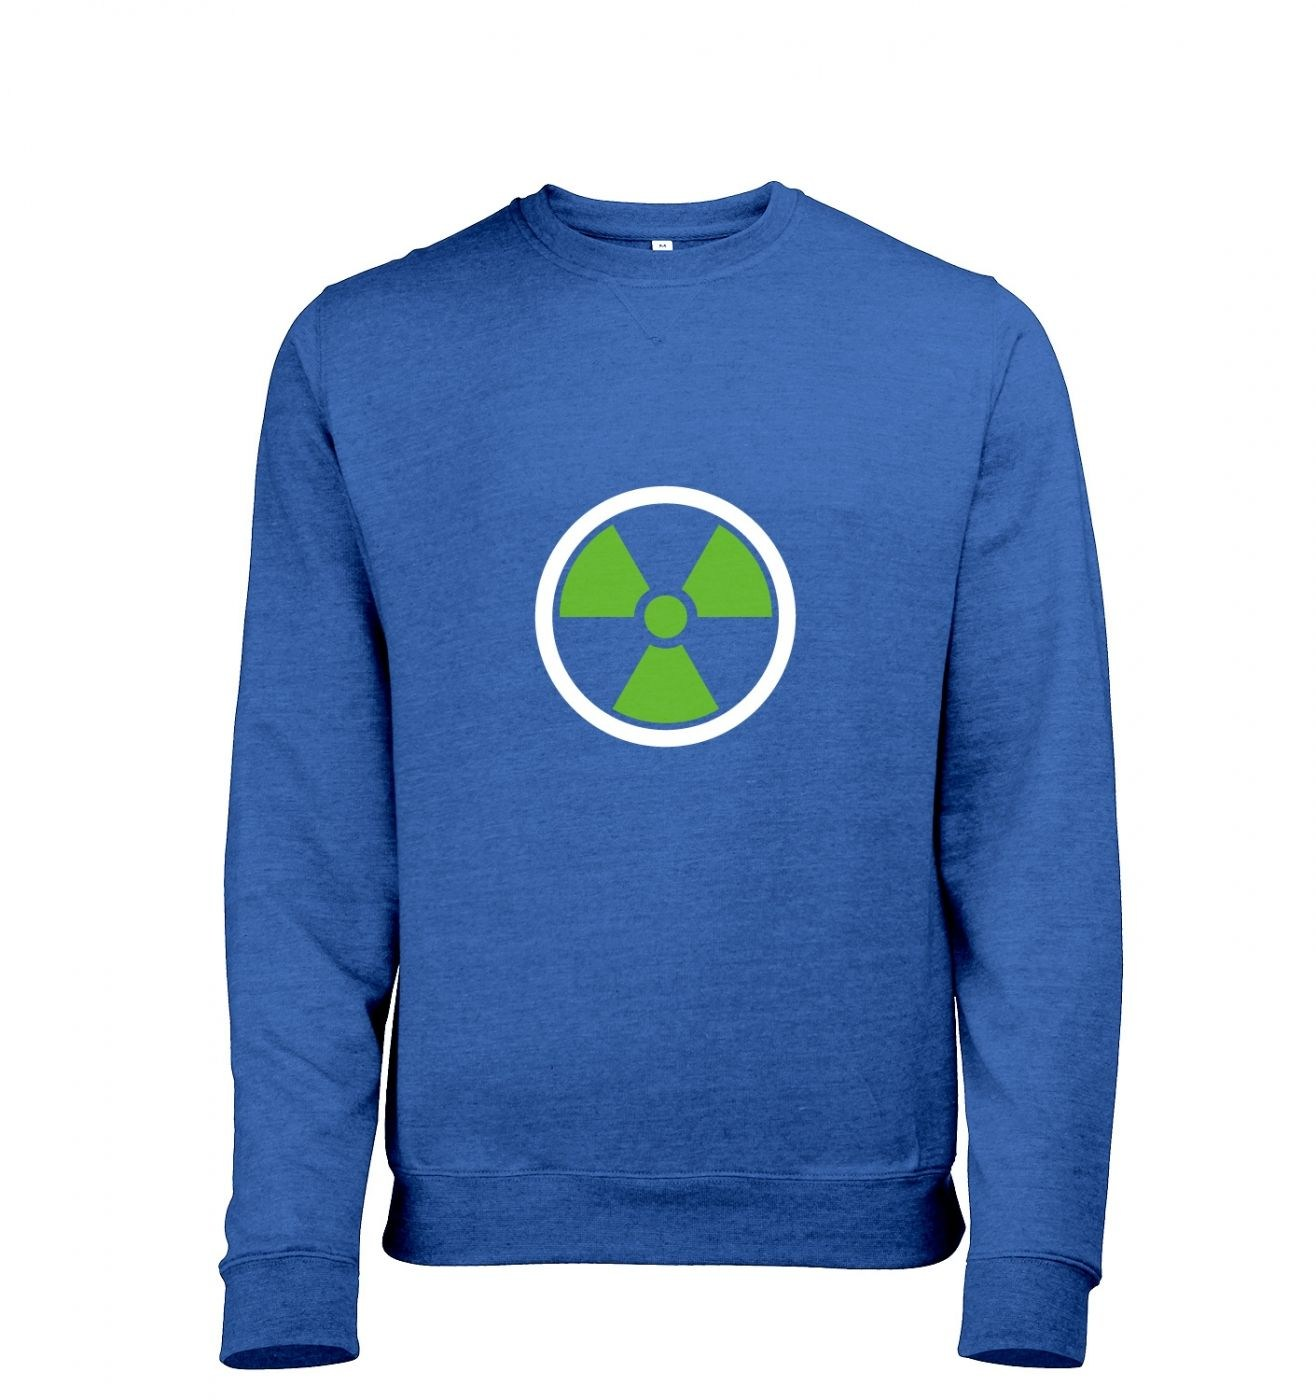 Green Radiation Symbol heather sweatshirt